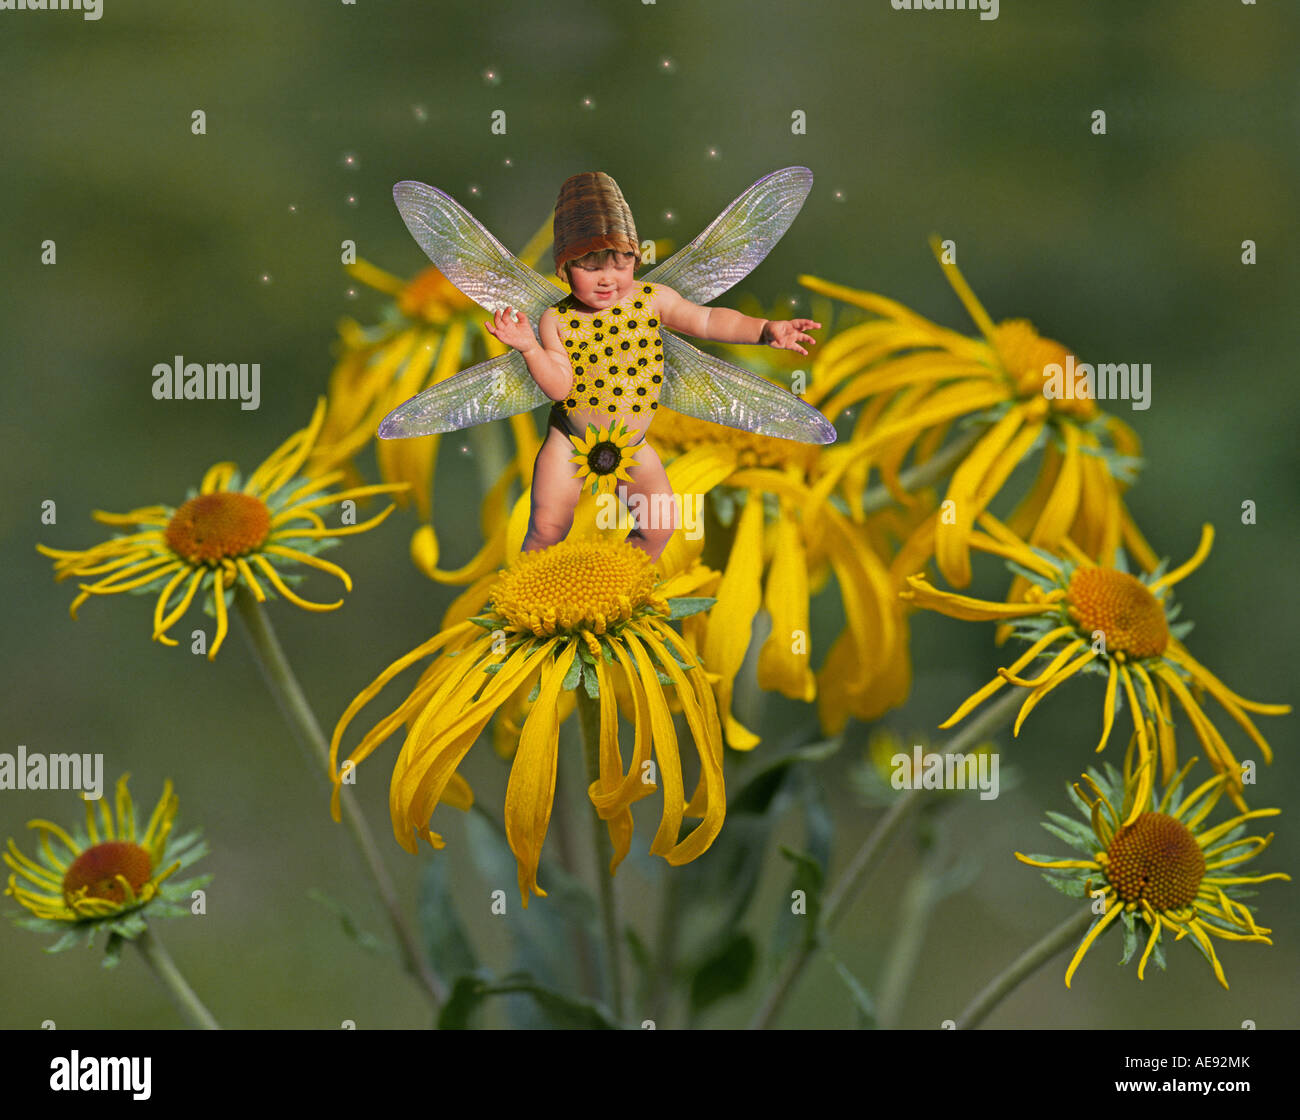 A flower fairy on sneezeweed - Stock Image